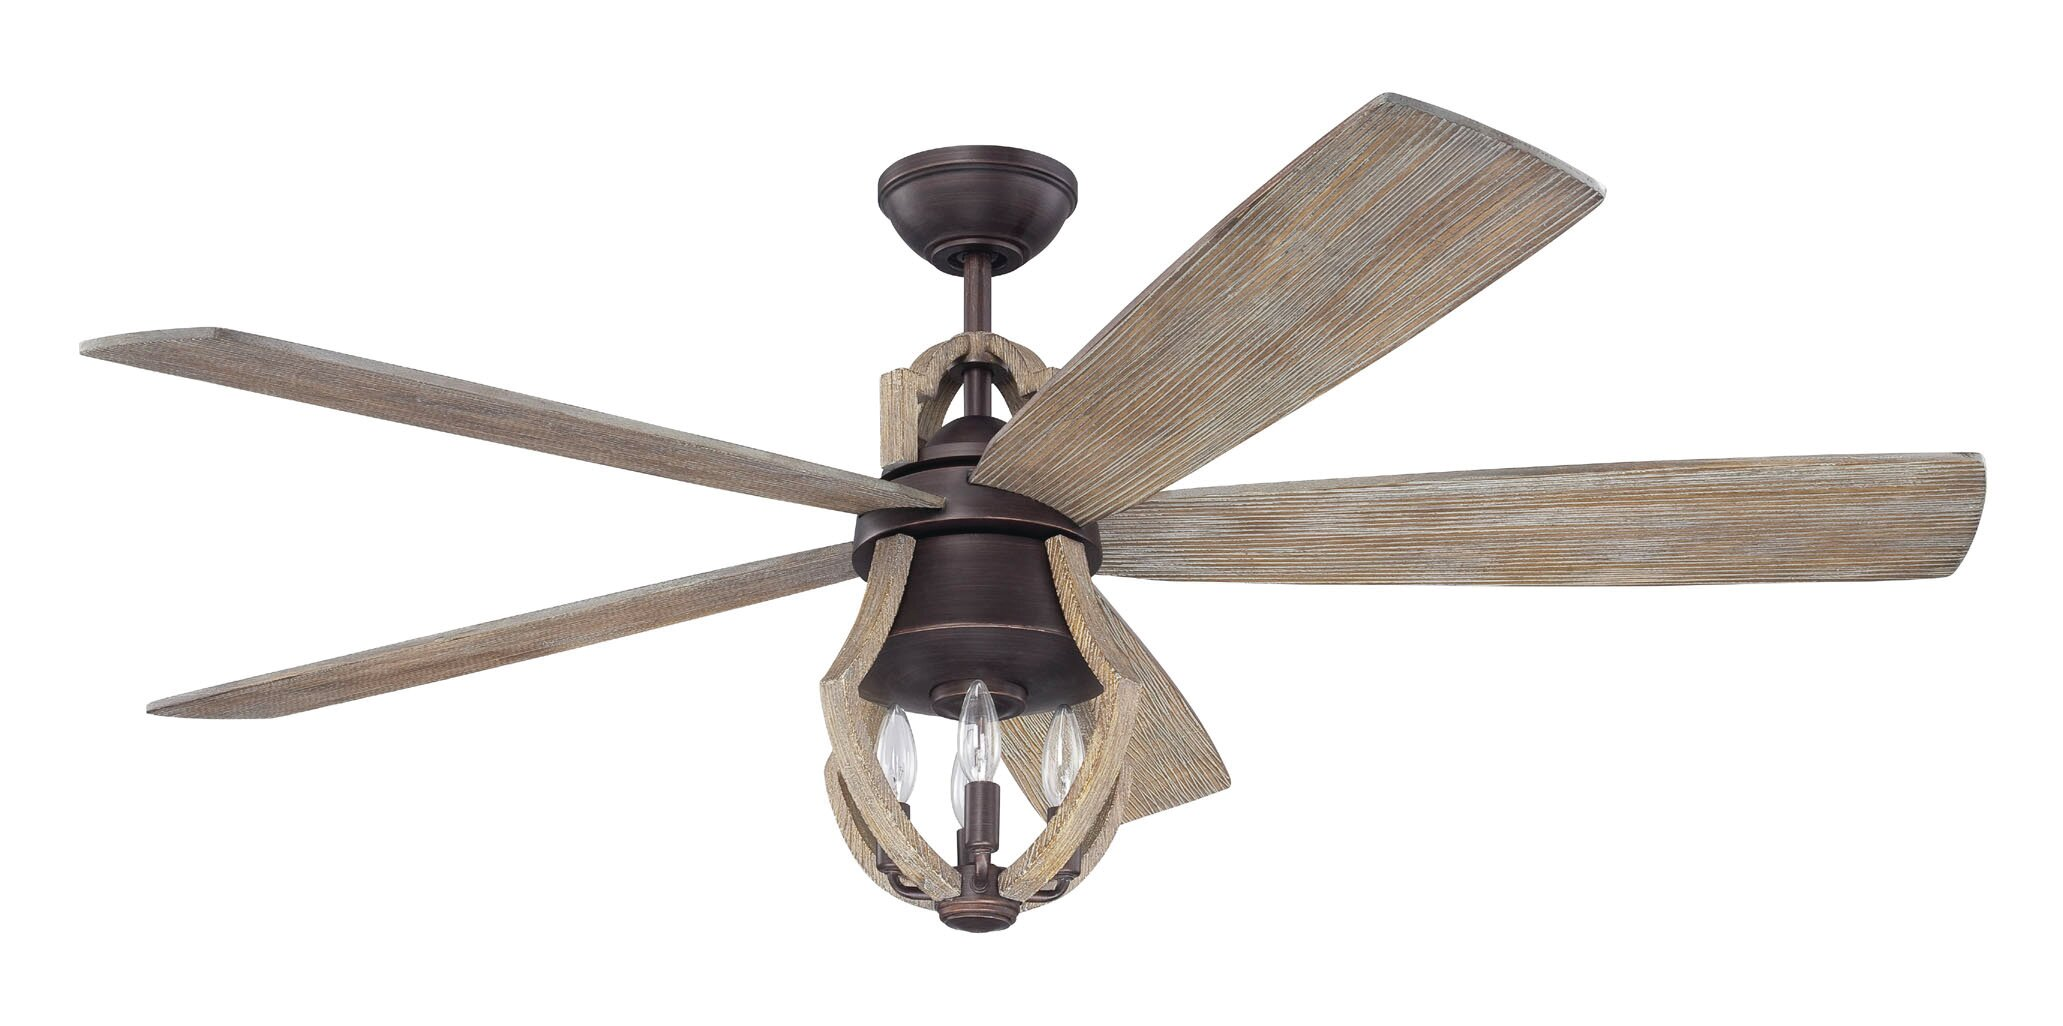 design fan your beige in dual best find favorite for fans five sources beautiful ceiling natural these room option head color